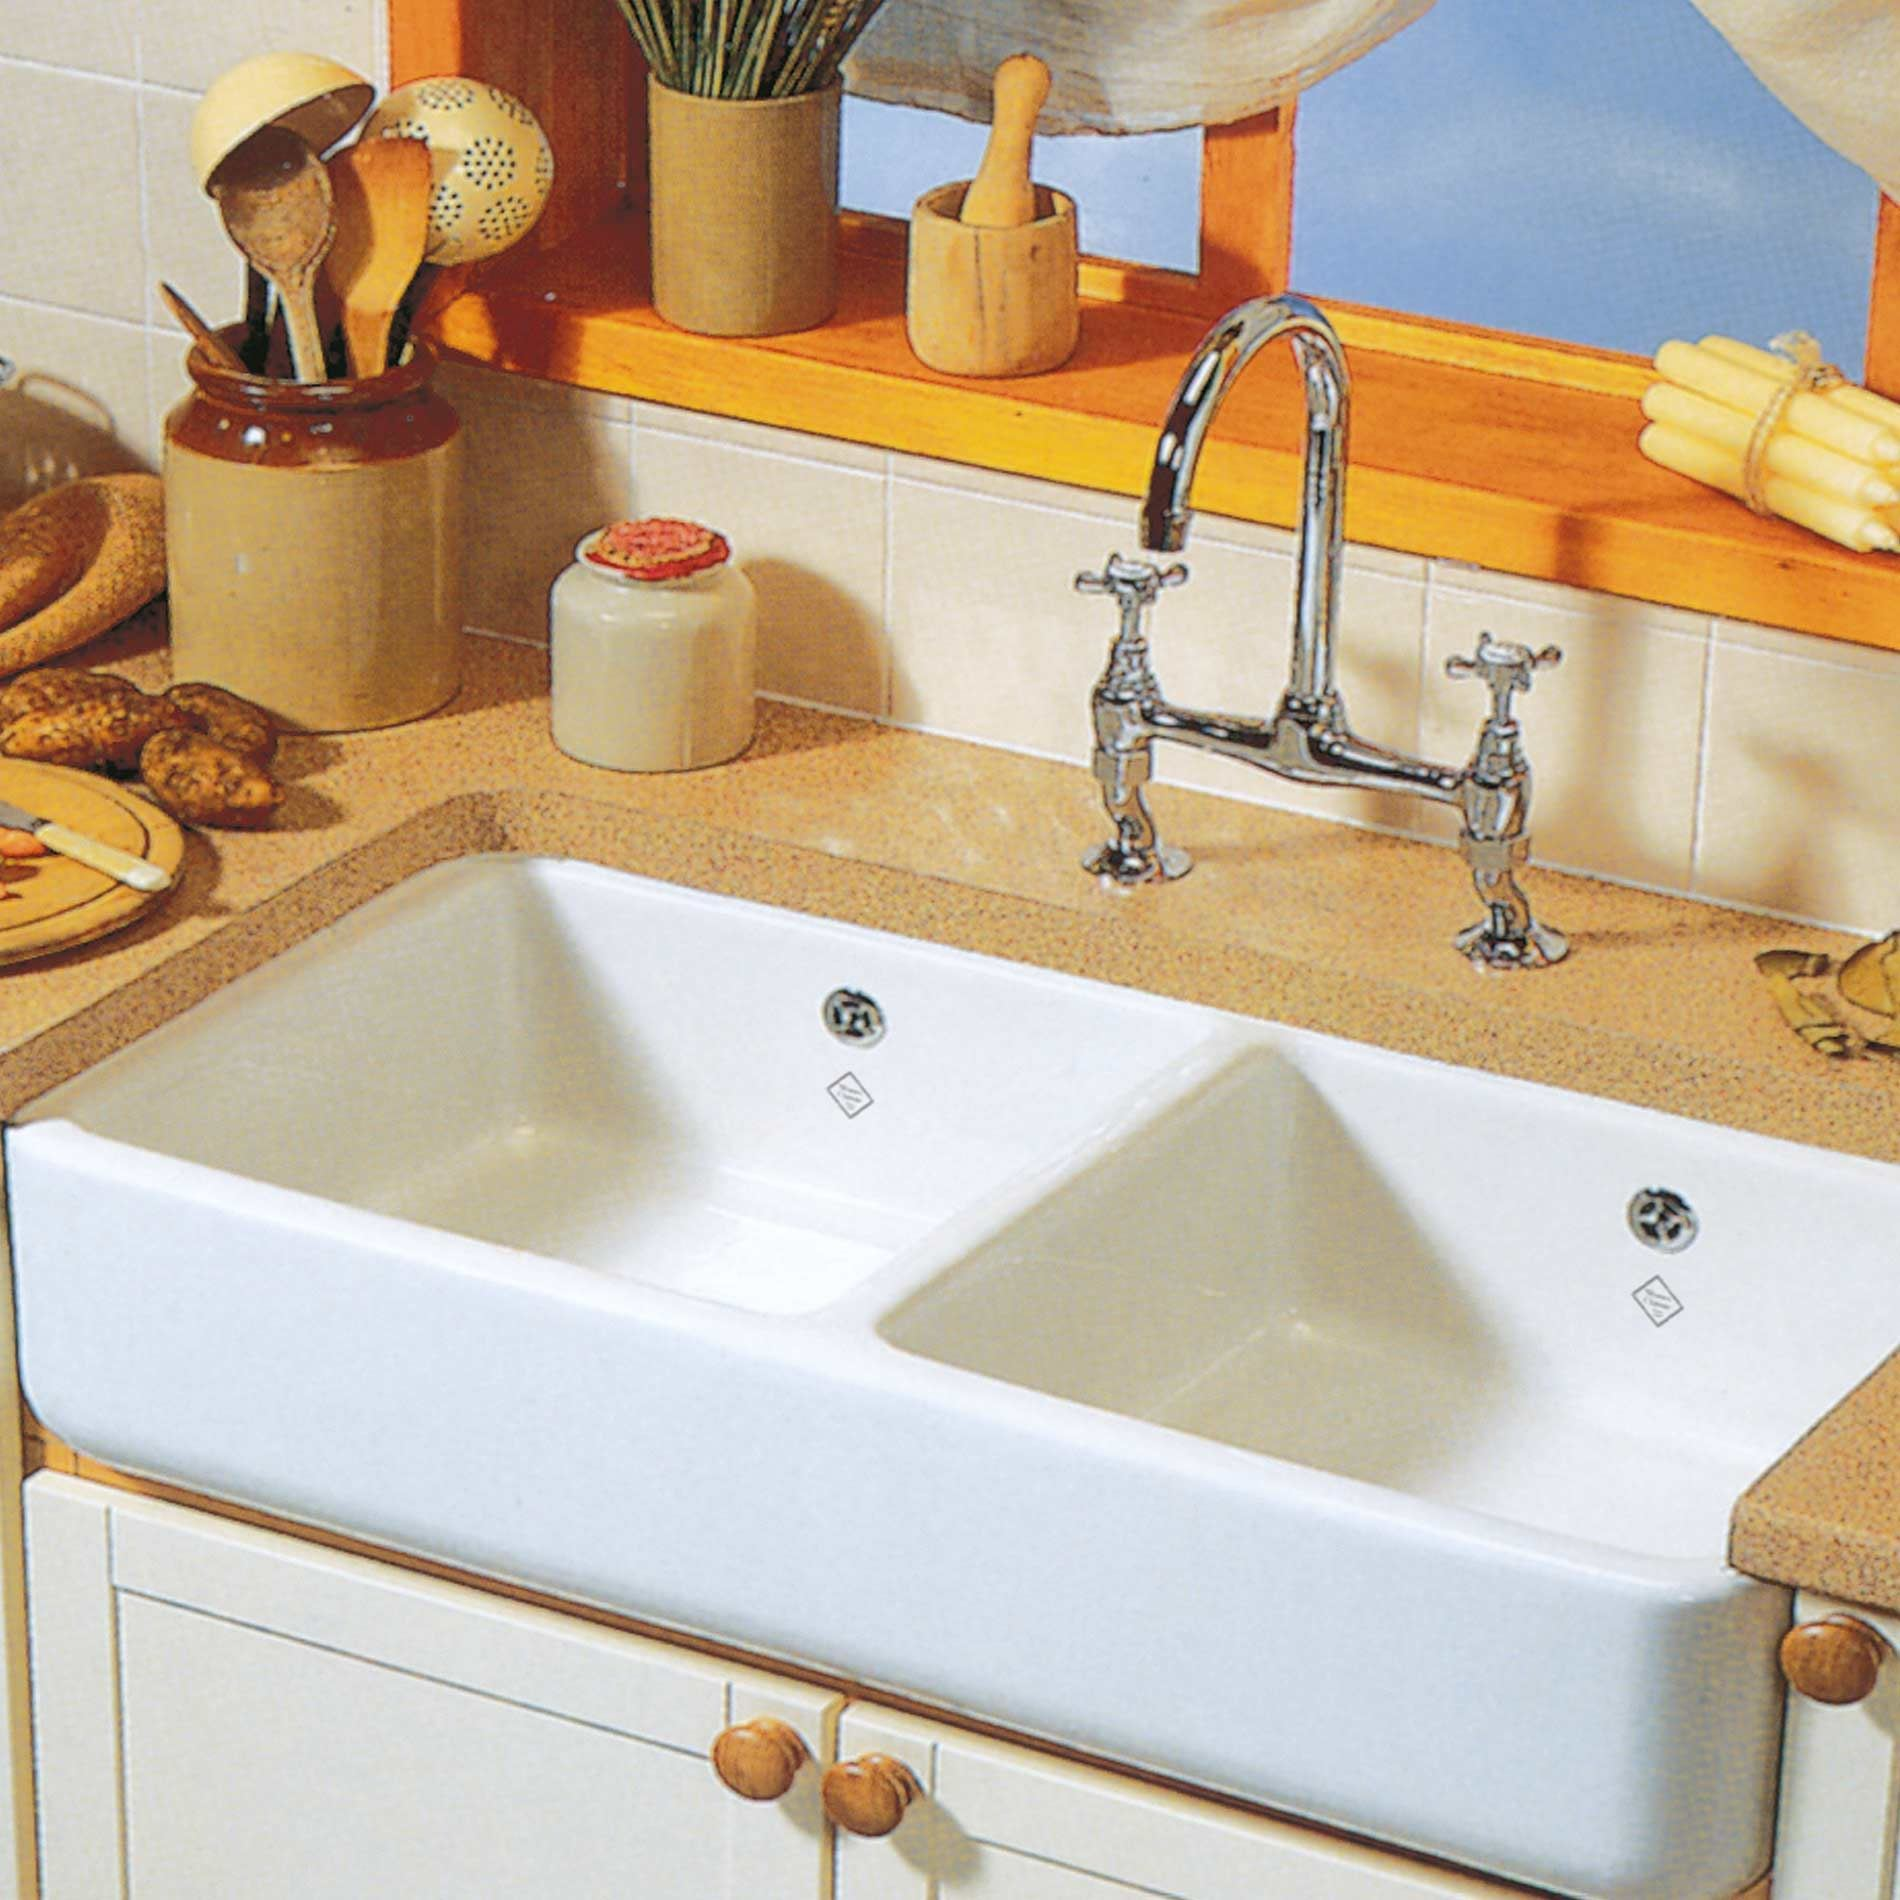 Ceramic Kitchen Sink Shaws Classic 1000 Double Ceramic Sink Kitchen Sinks And Taps